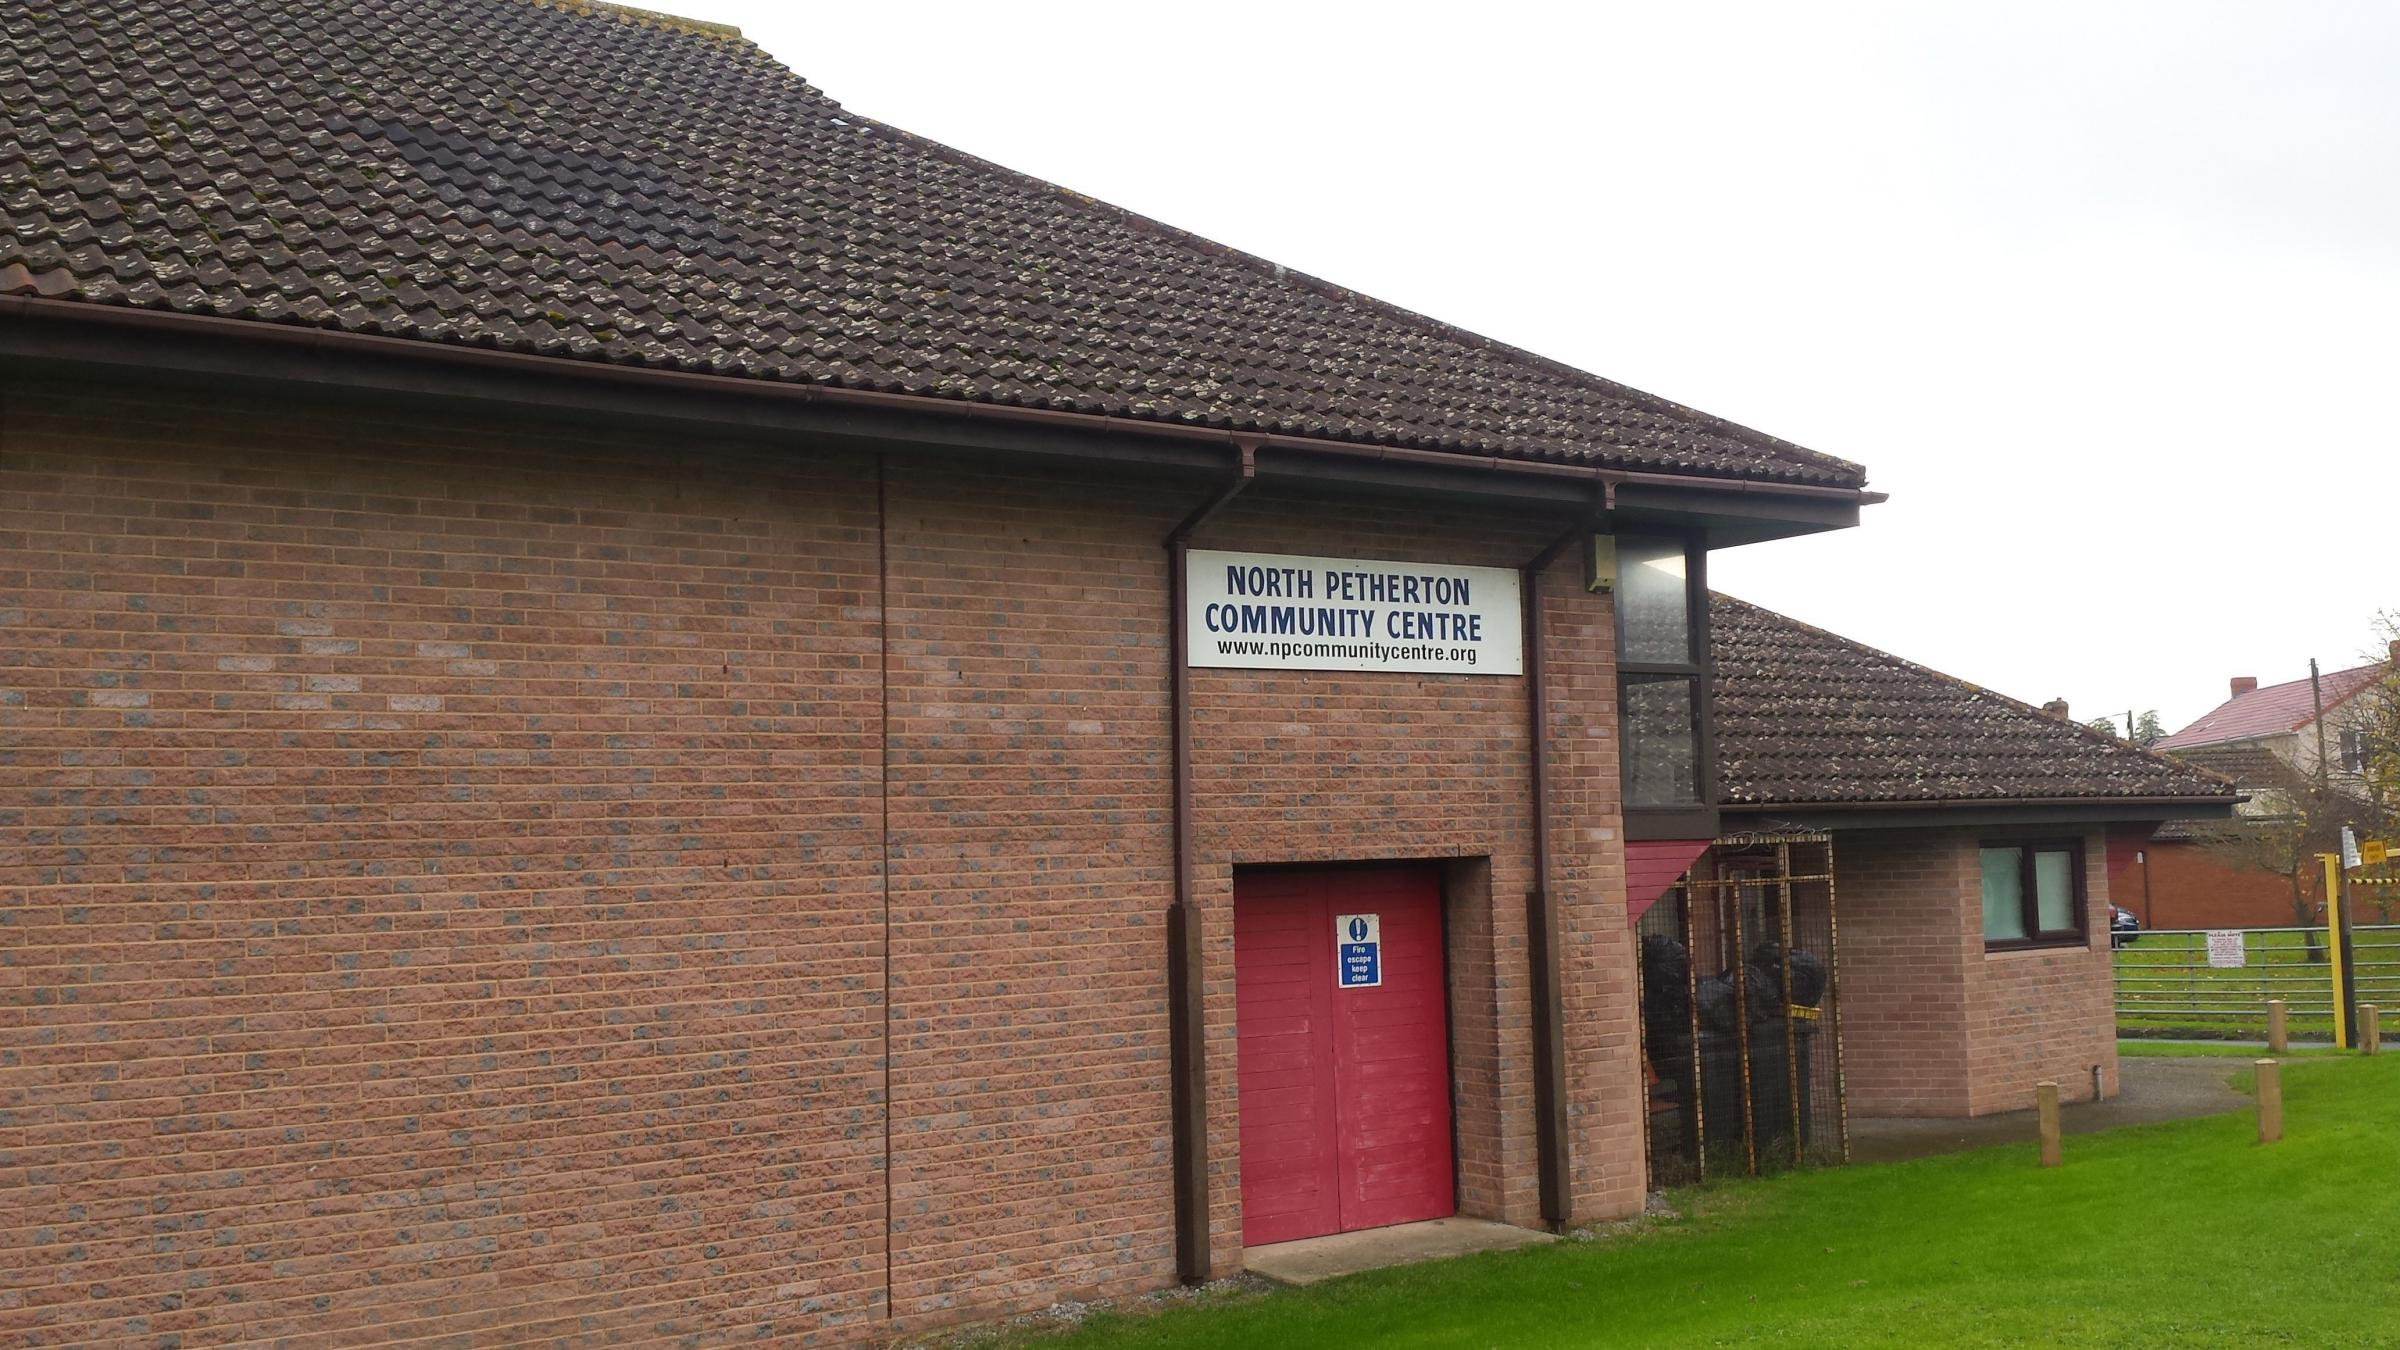 FRUSTRATION: 'Boy racers' have been gathering in the North Petherton Community Centre late at night